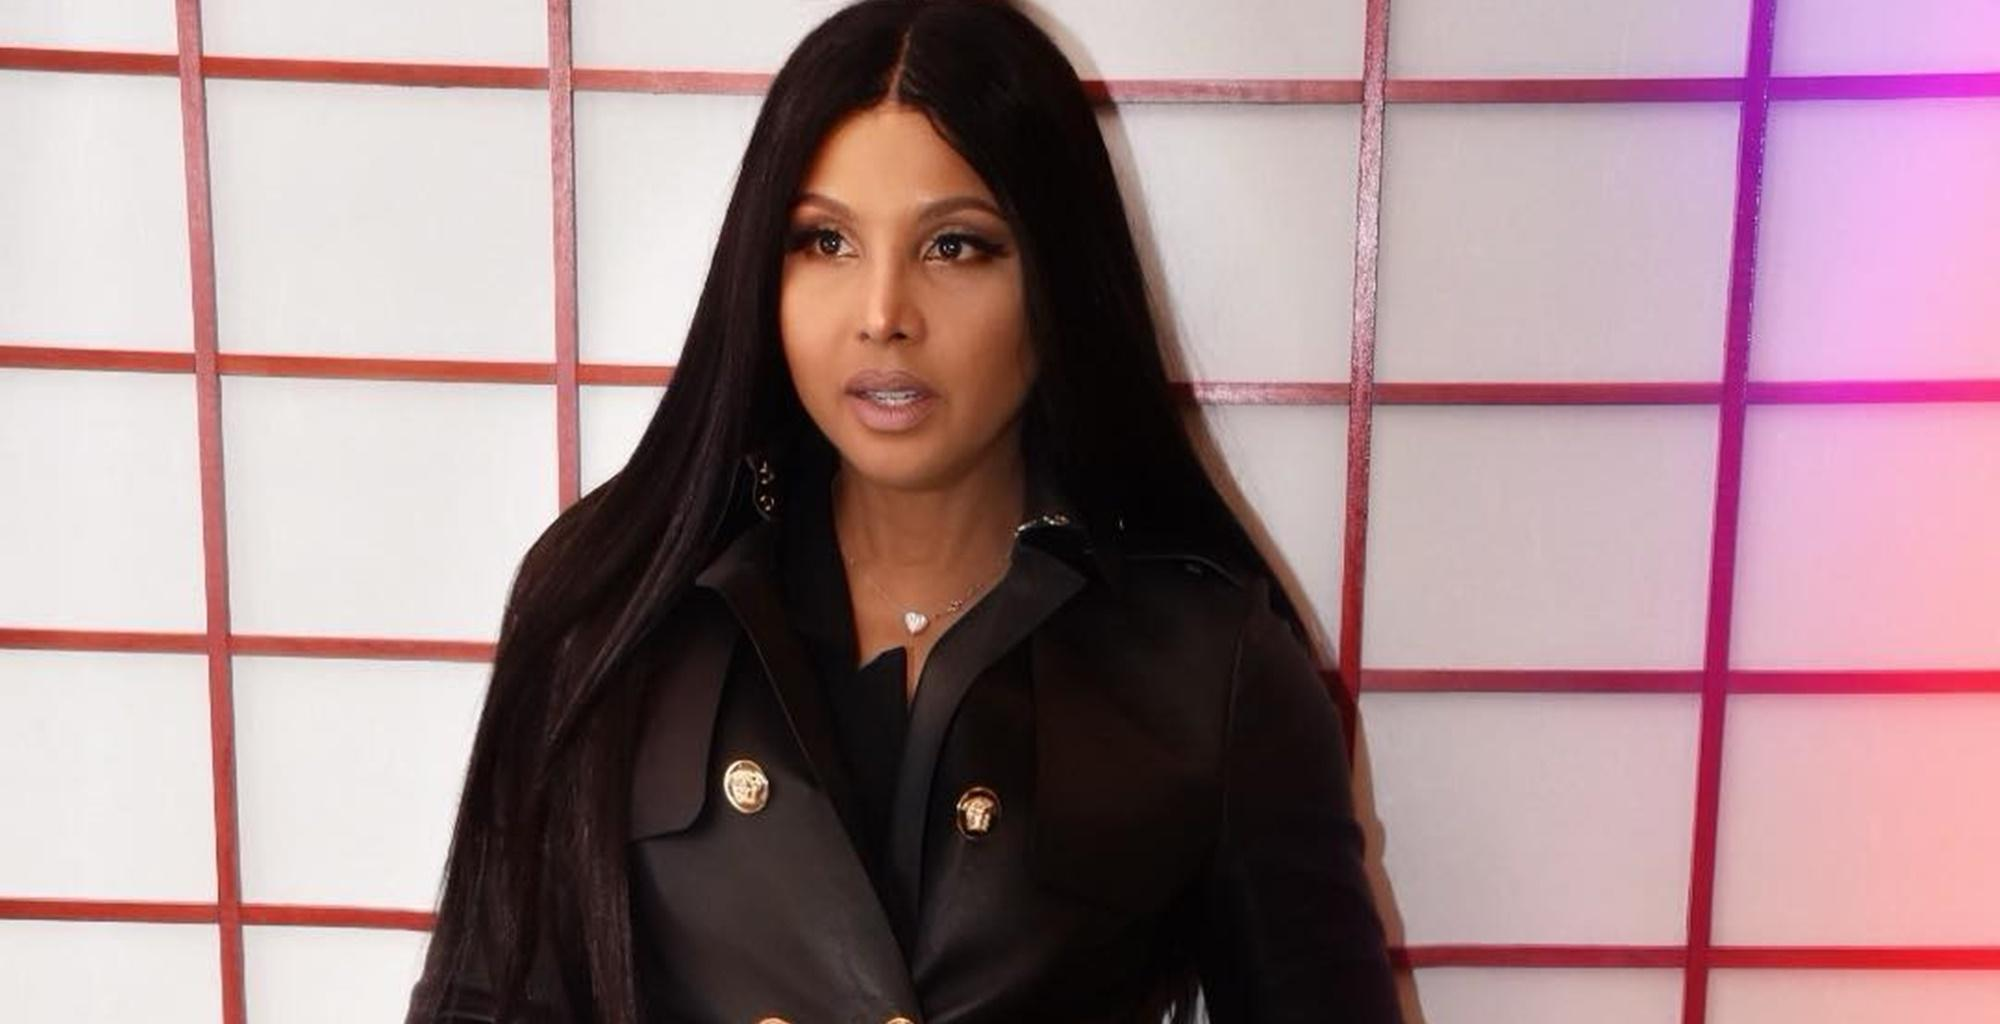 Toni Braxton Can Melt Ice With New Photo Amid Claims She Faked Birdman Reunion